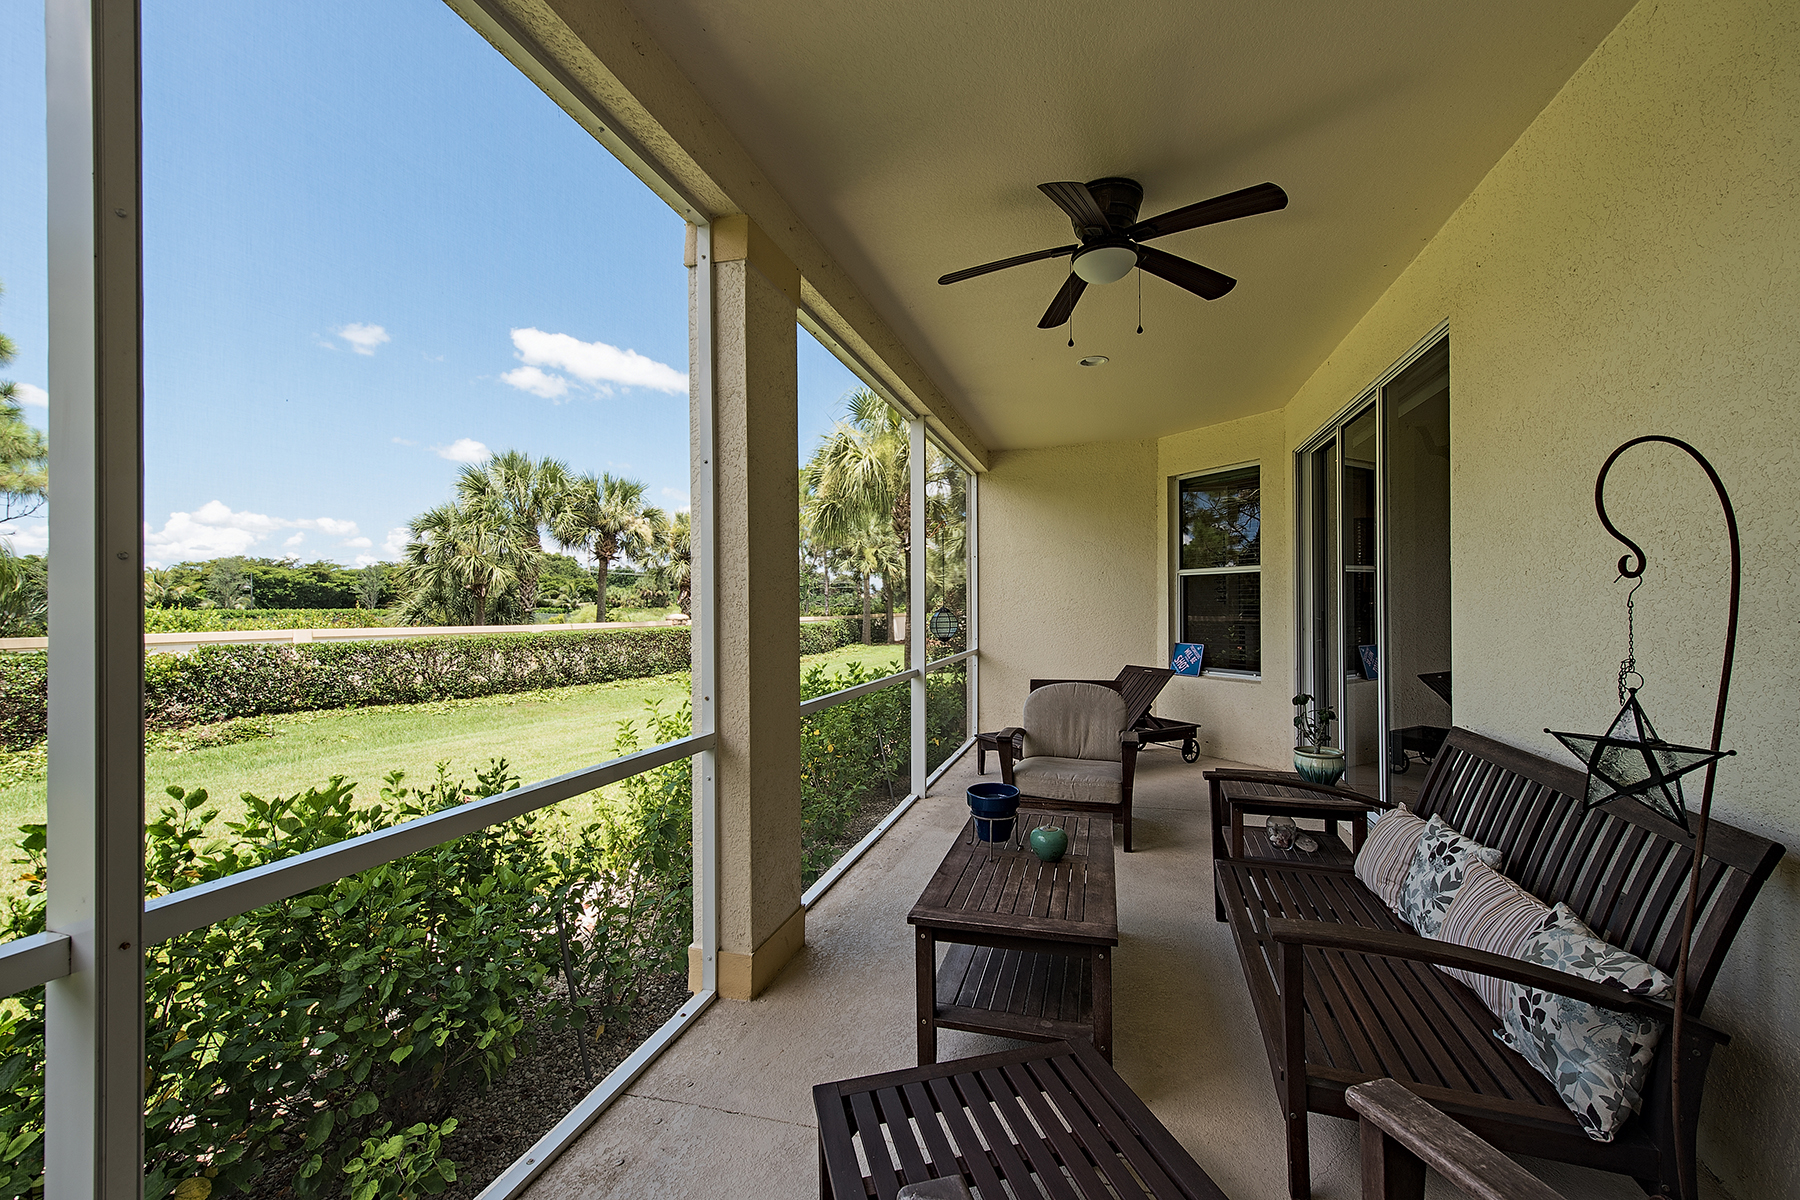 sales property at EMERSON SQUARE - HARMONY POINTE